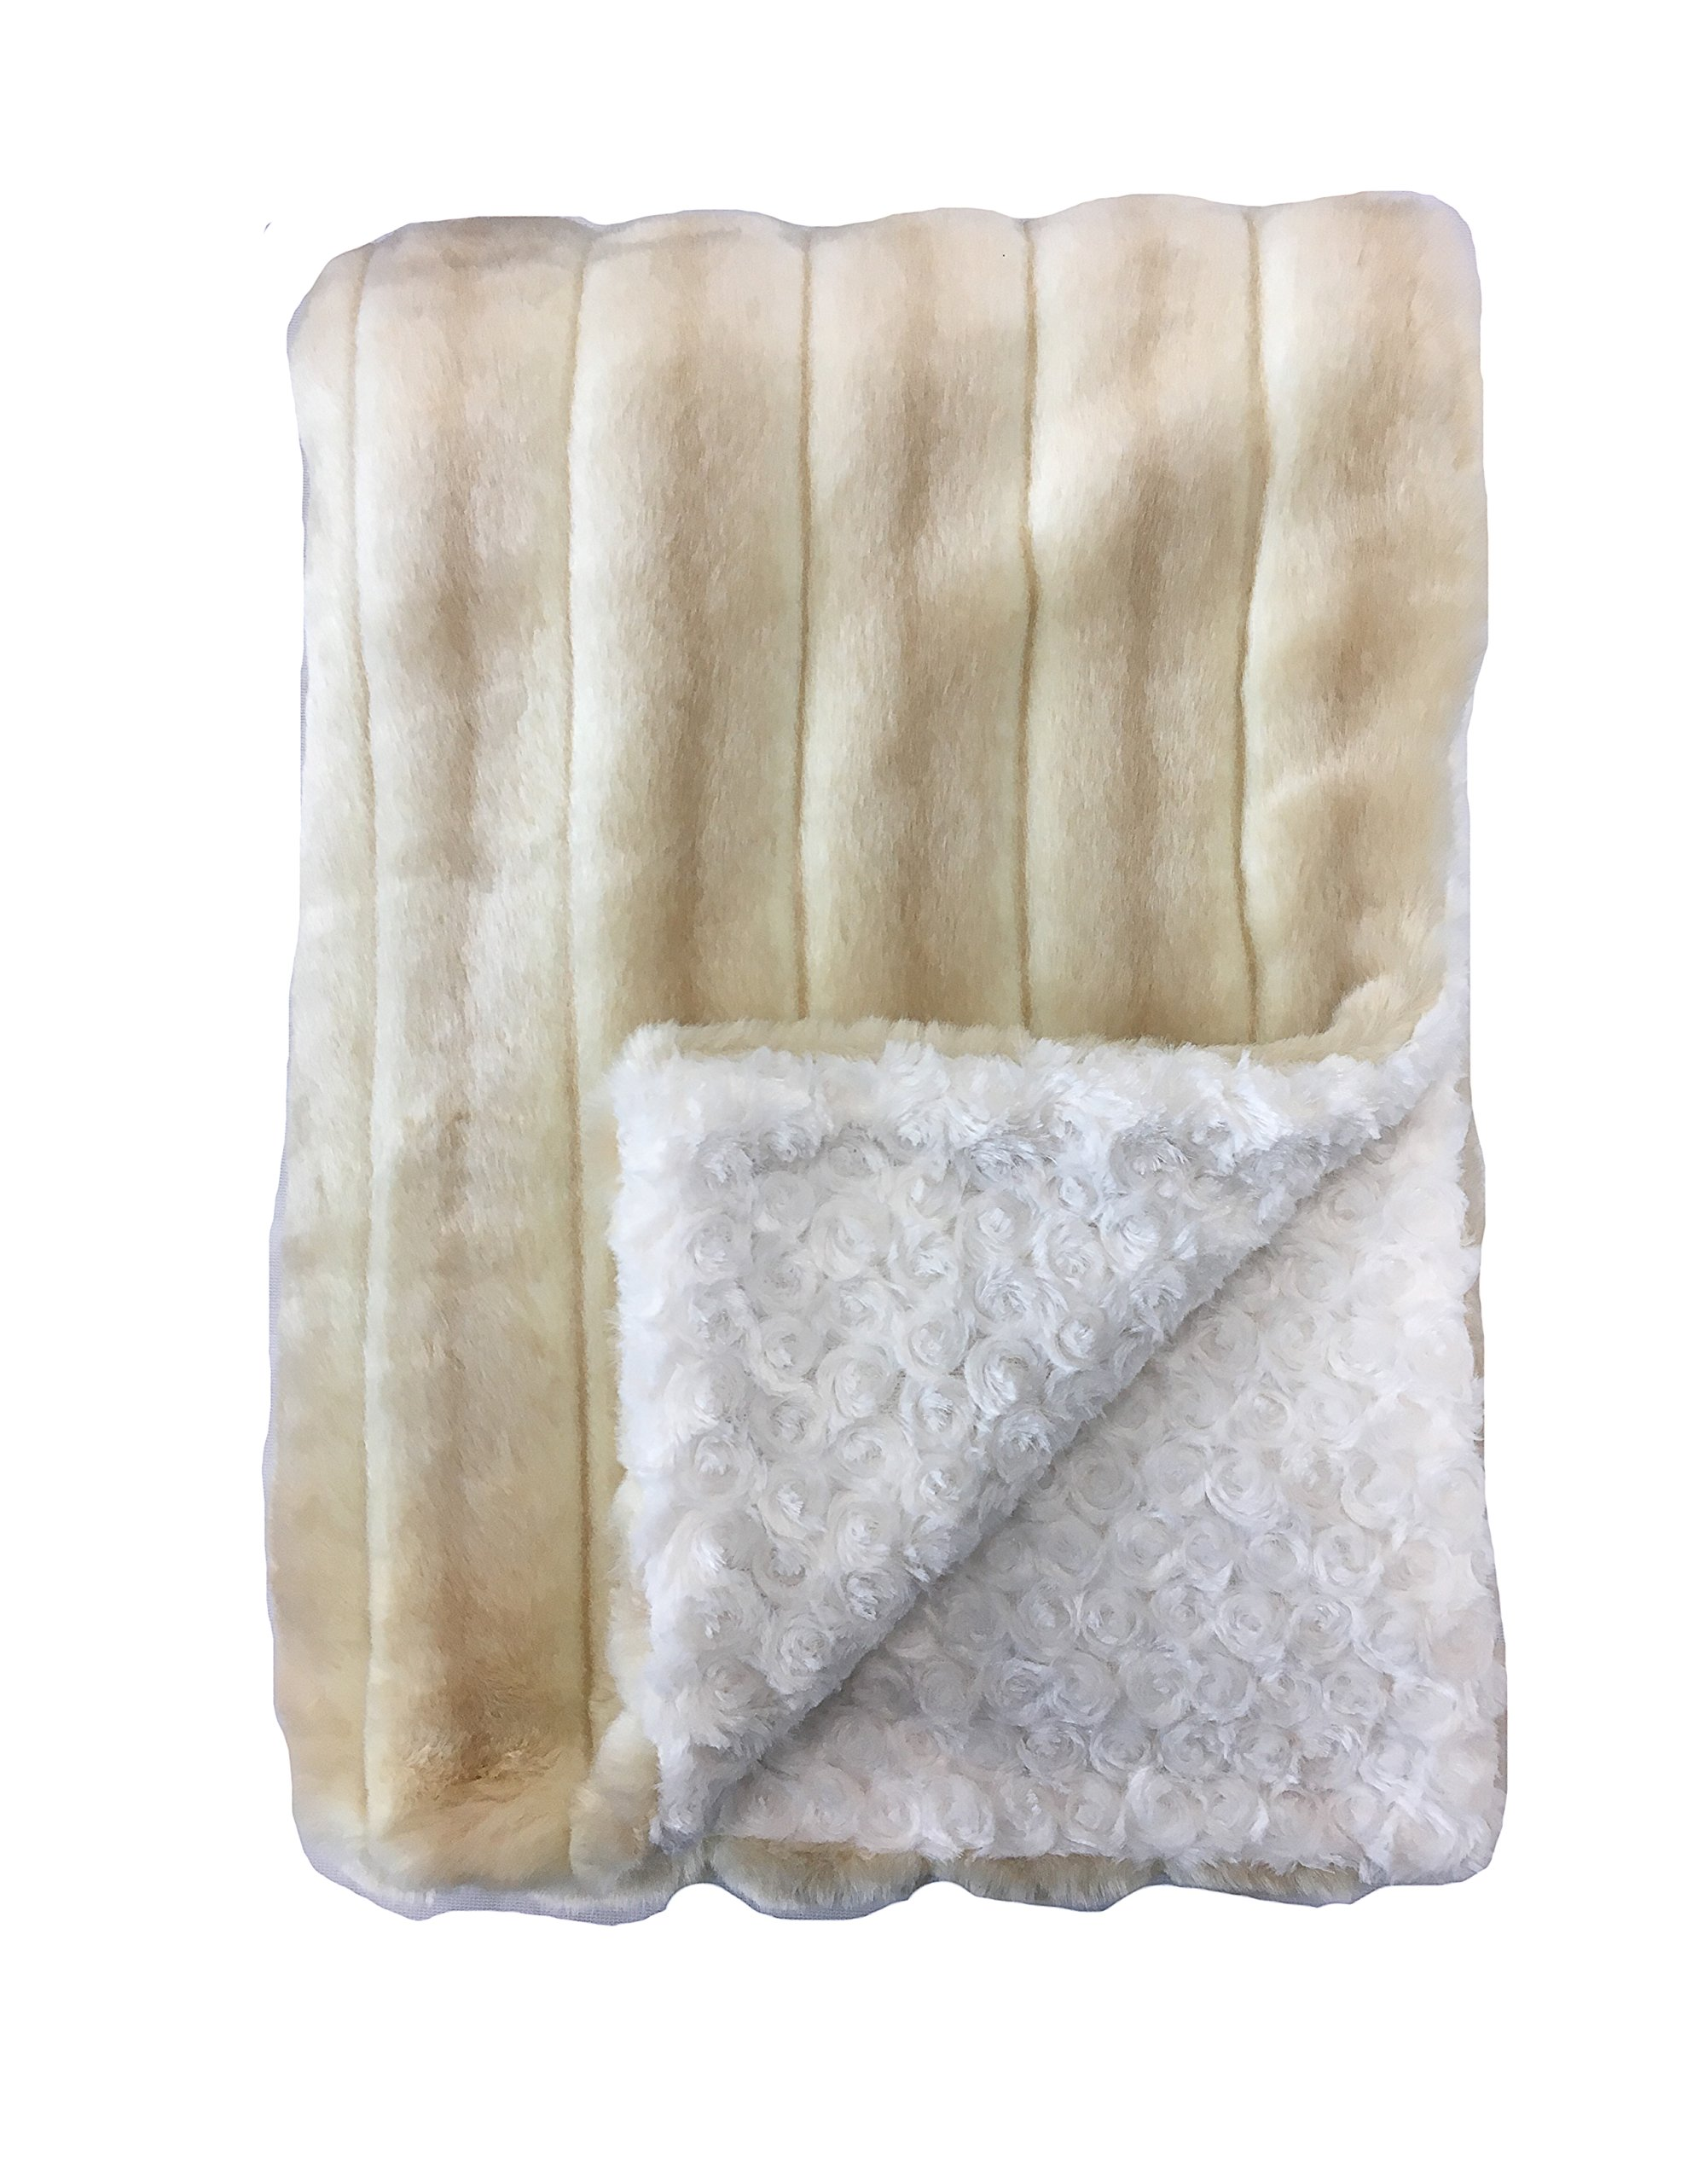 GoodDogBeds 15 by 18-Inch Faux Fur BaaBaa Dog Blanket, Small, Cr√me Brulee